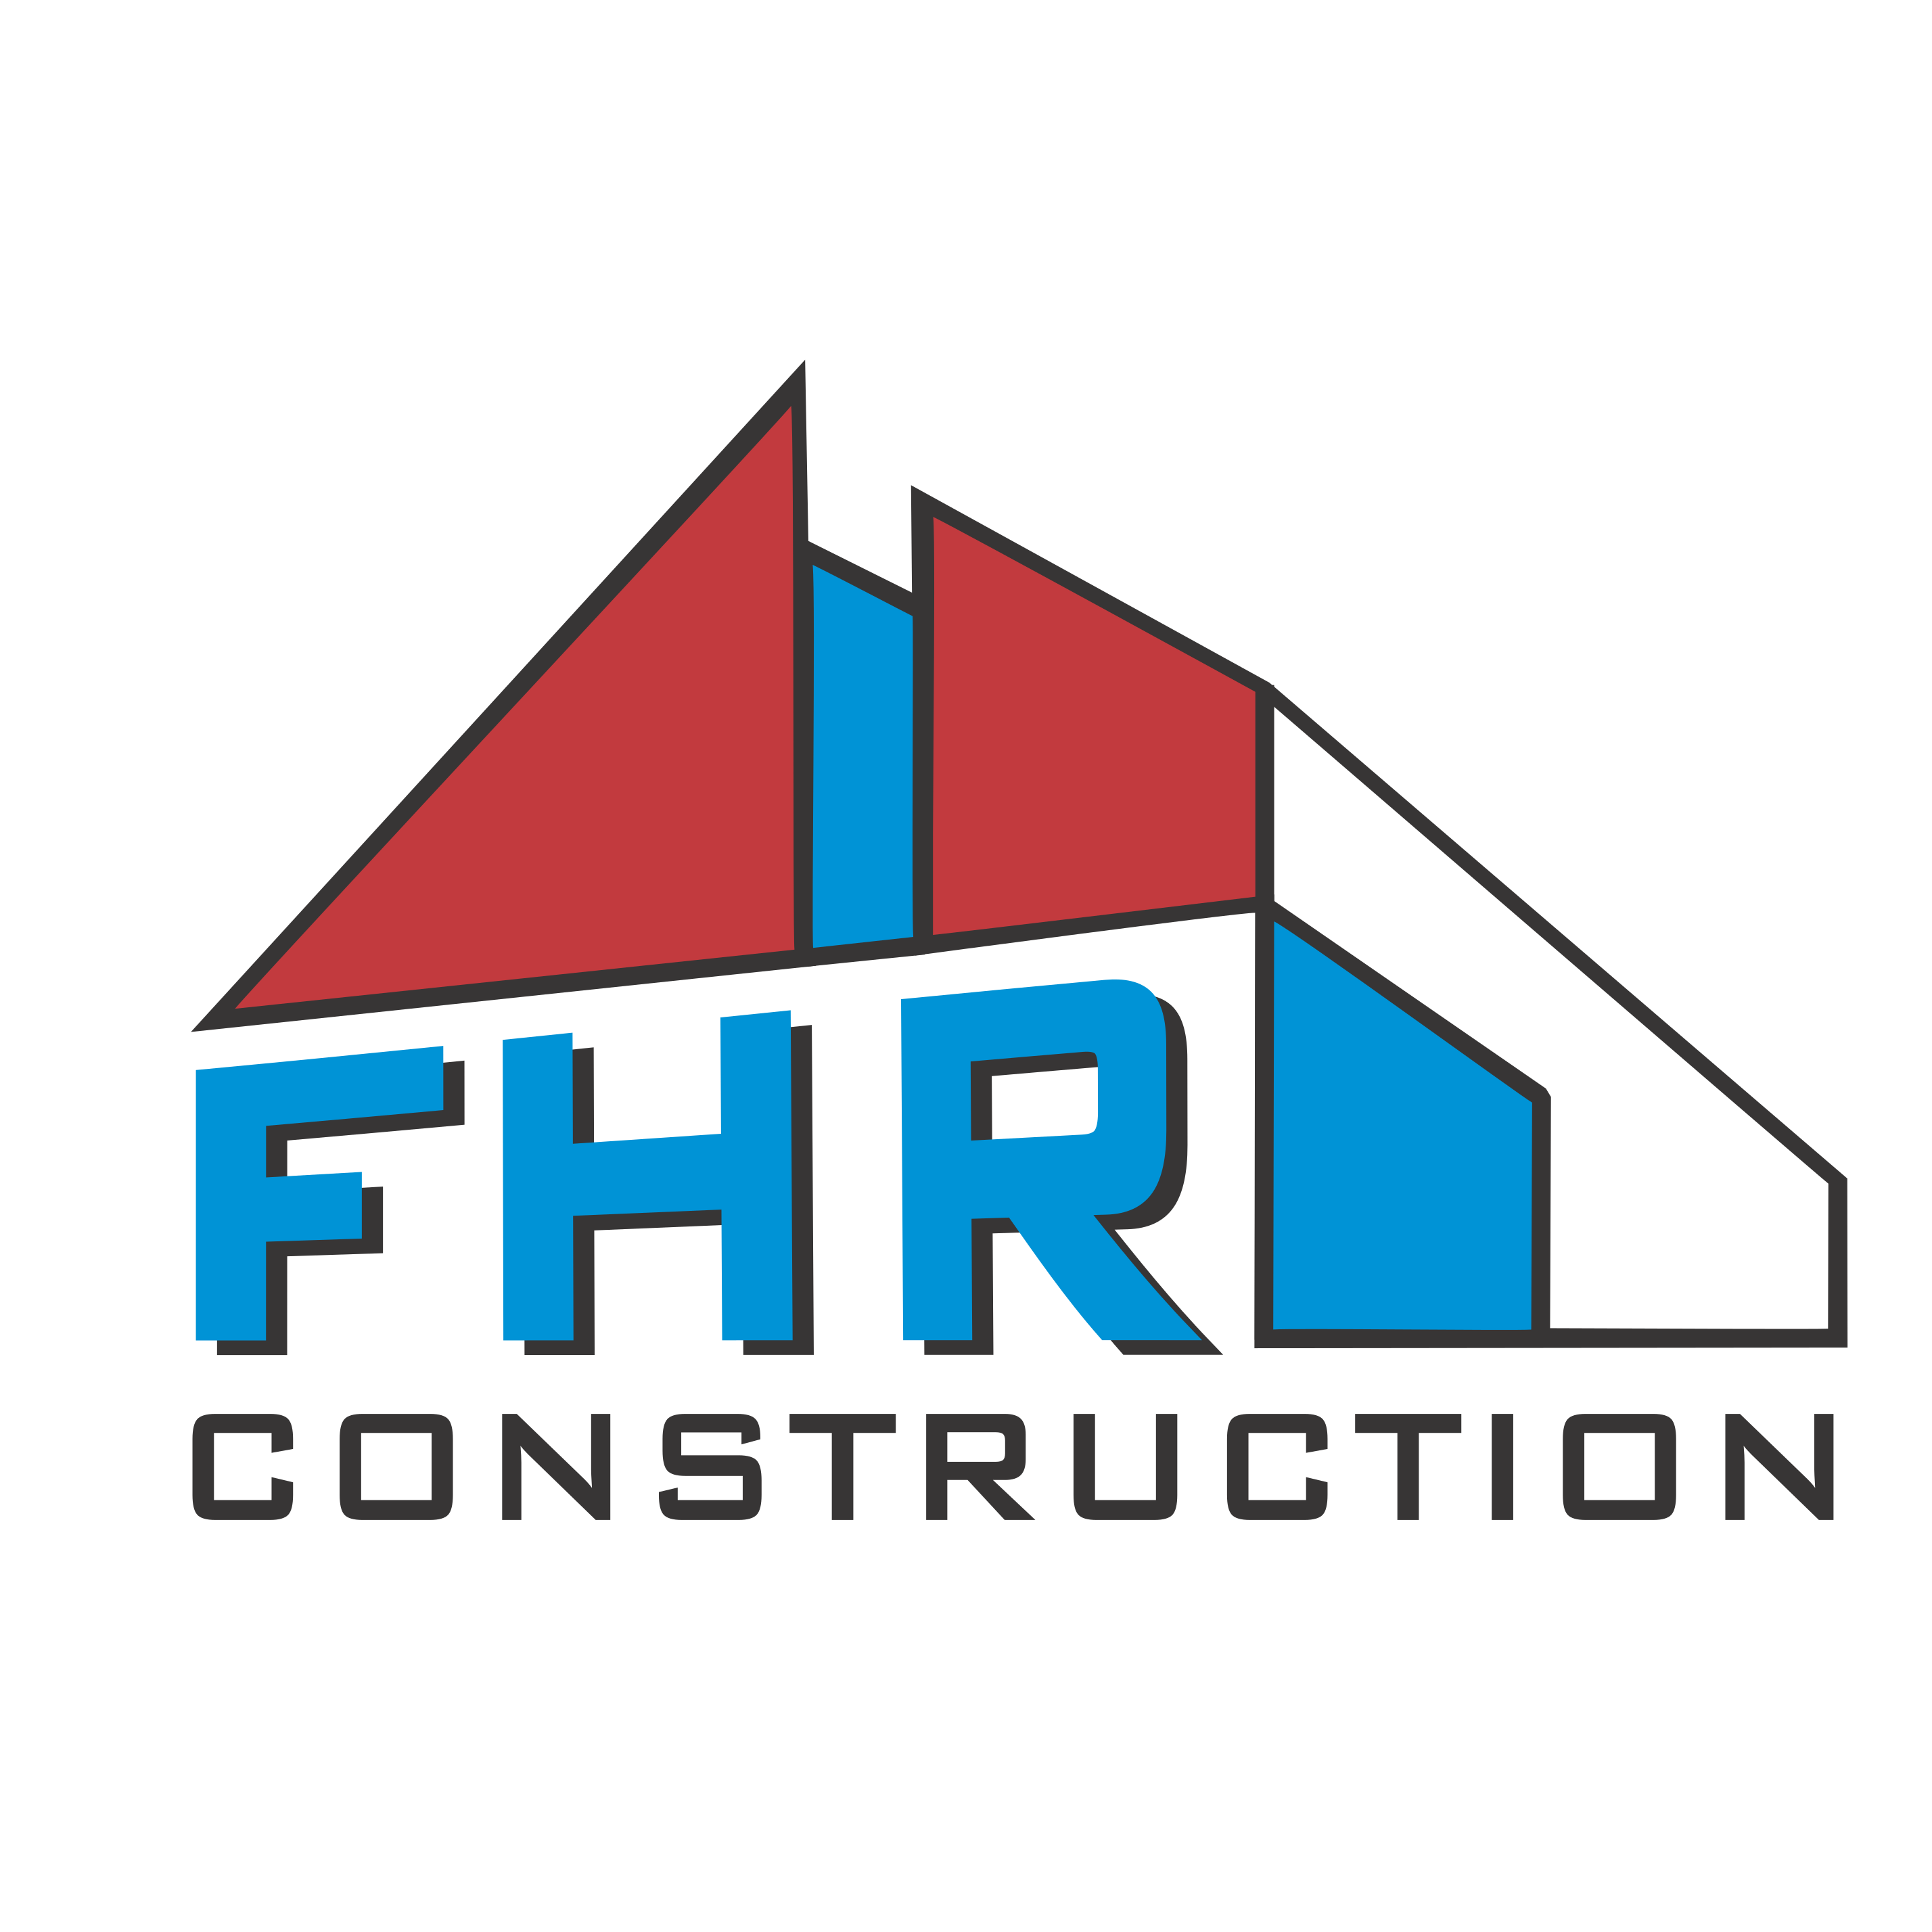 FHR Construction Corp